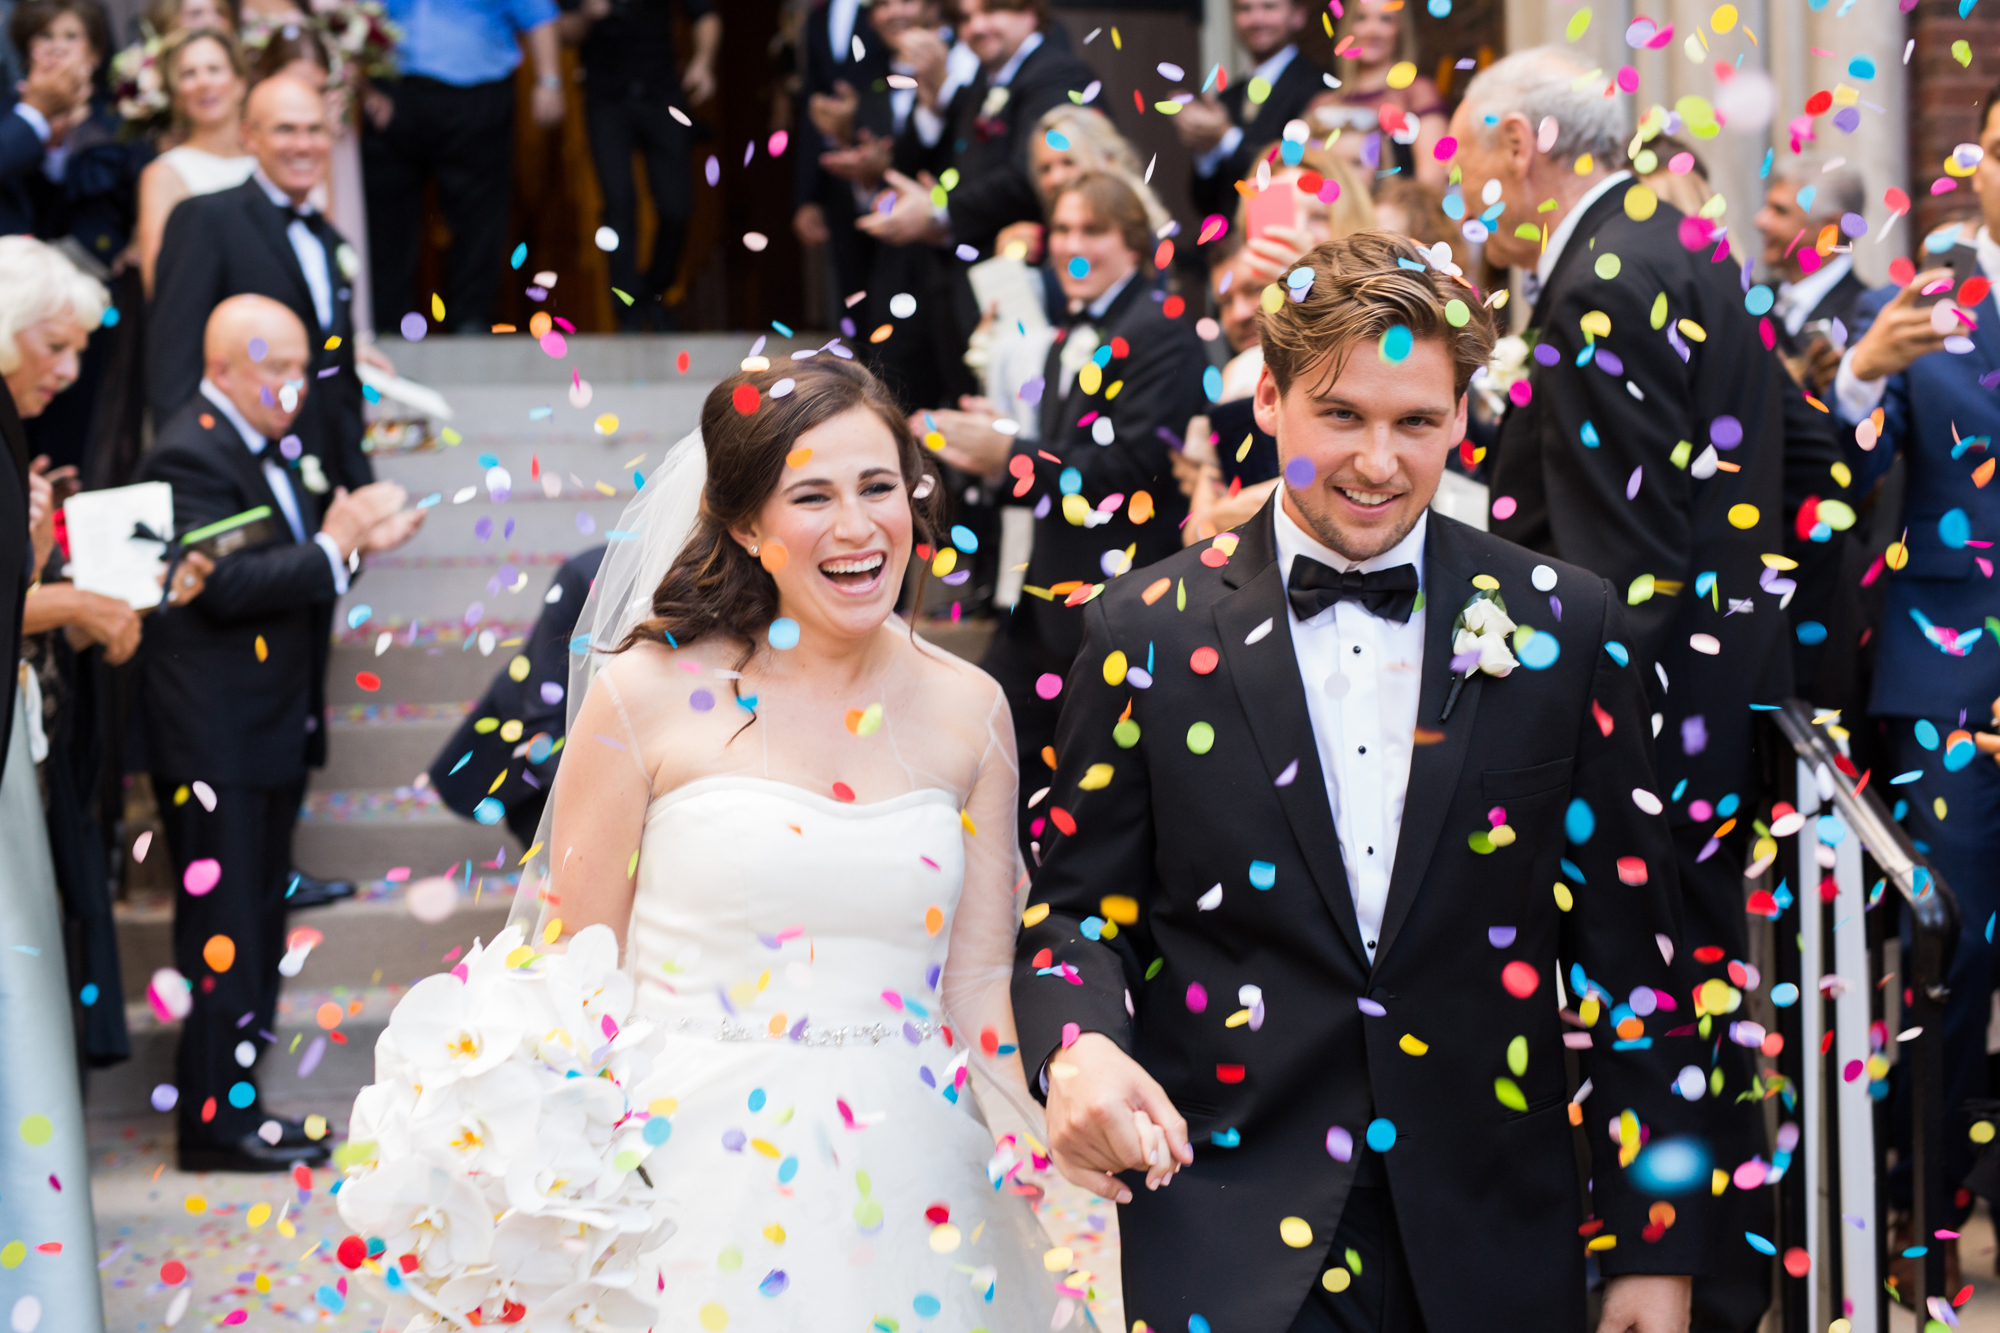 Guests throw confetti as bride and groom exit their wedding ceremony in Chicago, Illinois.